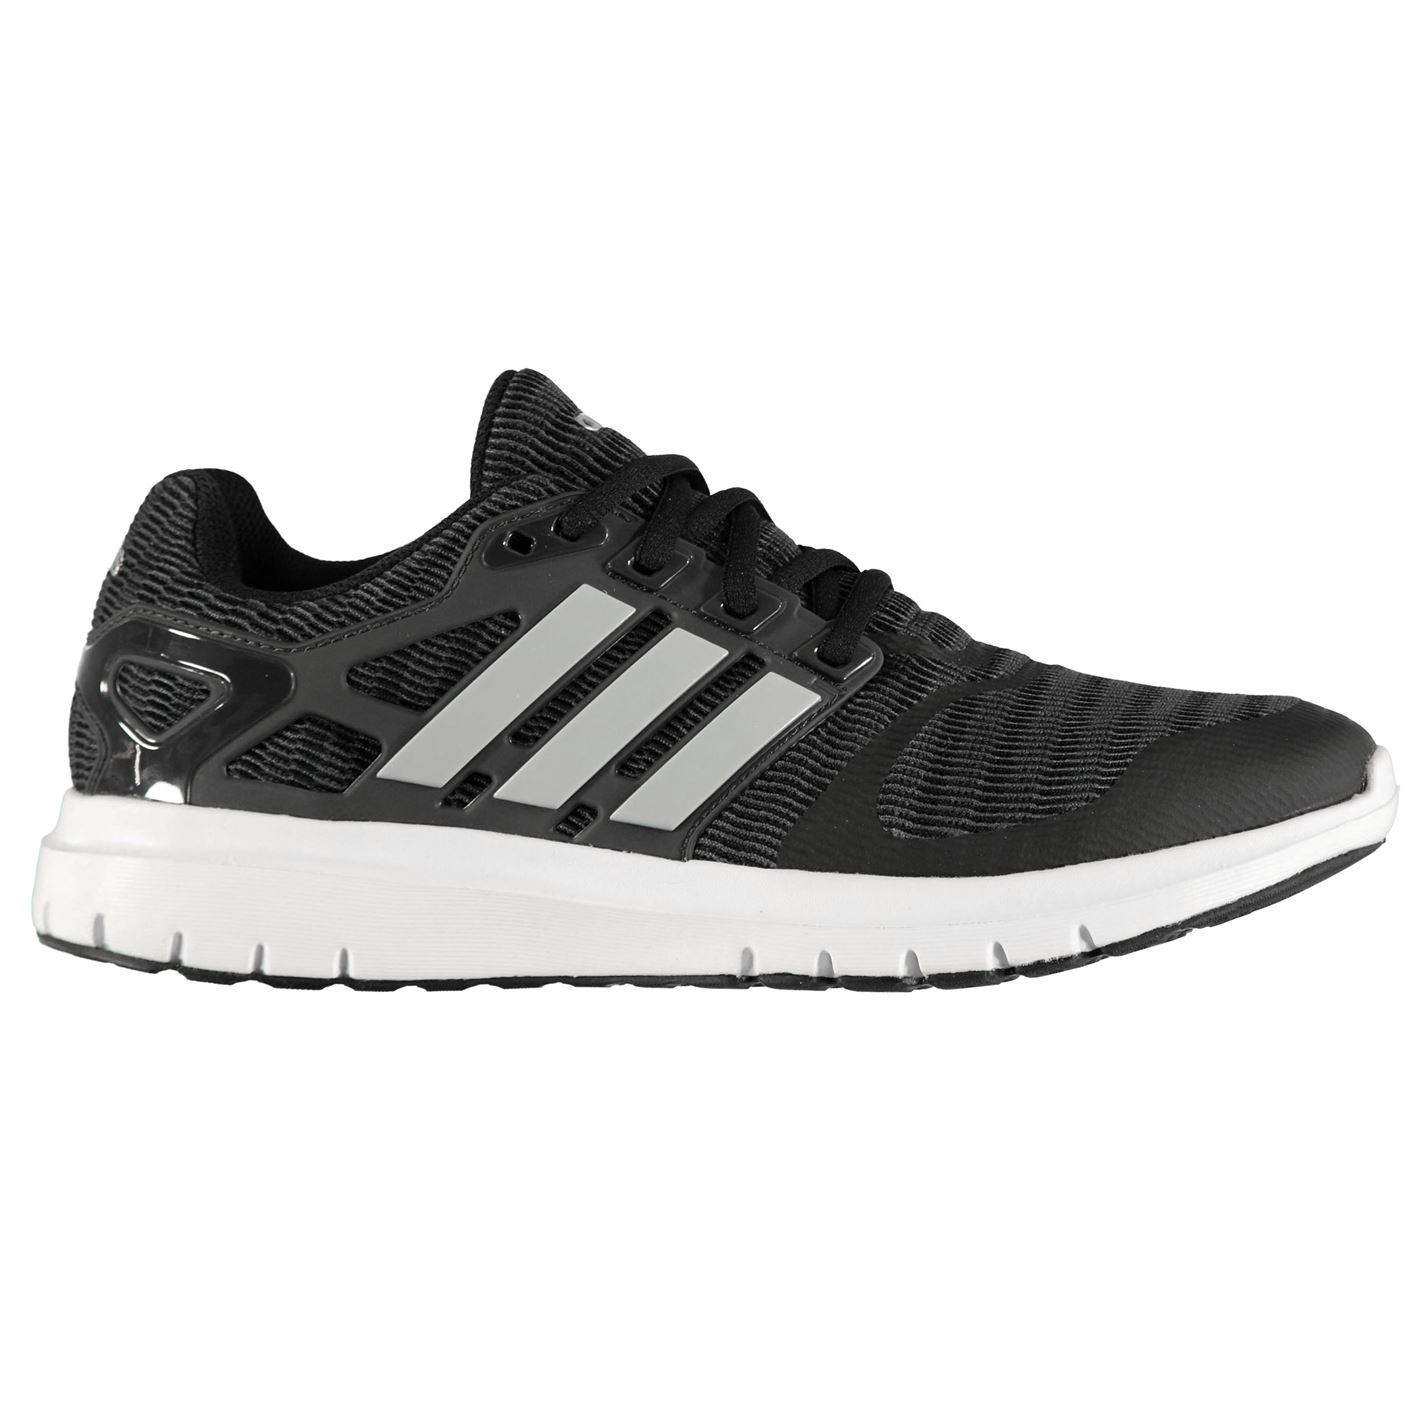 adidas femmes  Energy Cloud V Trainers Trainers V Runners  Chaussures  Breathable Lightweight 1179f0